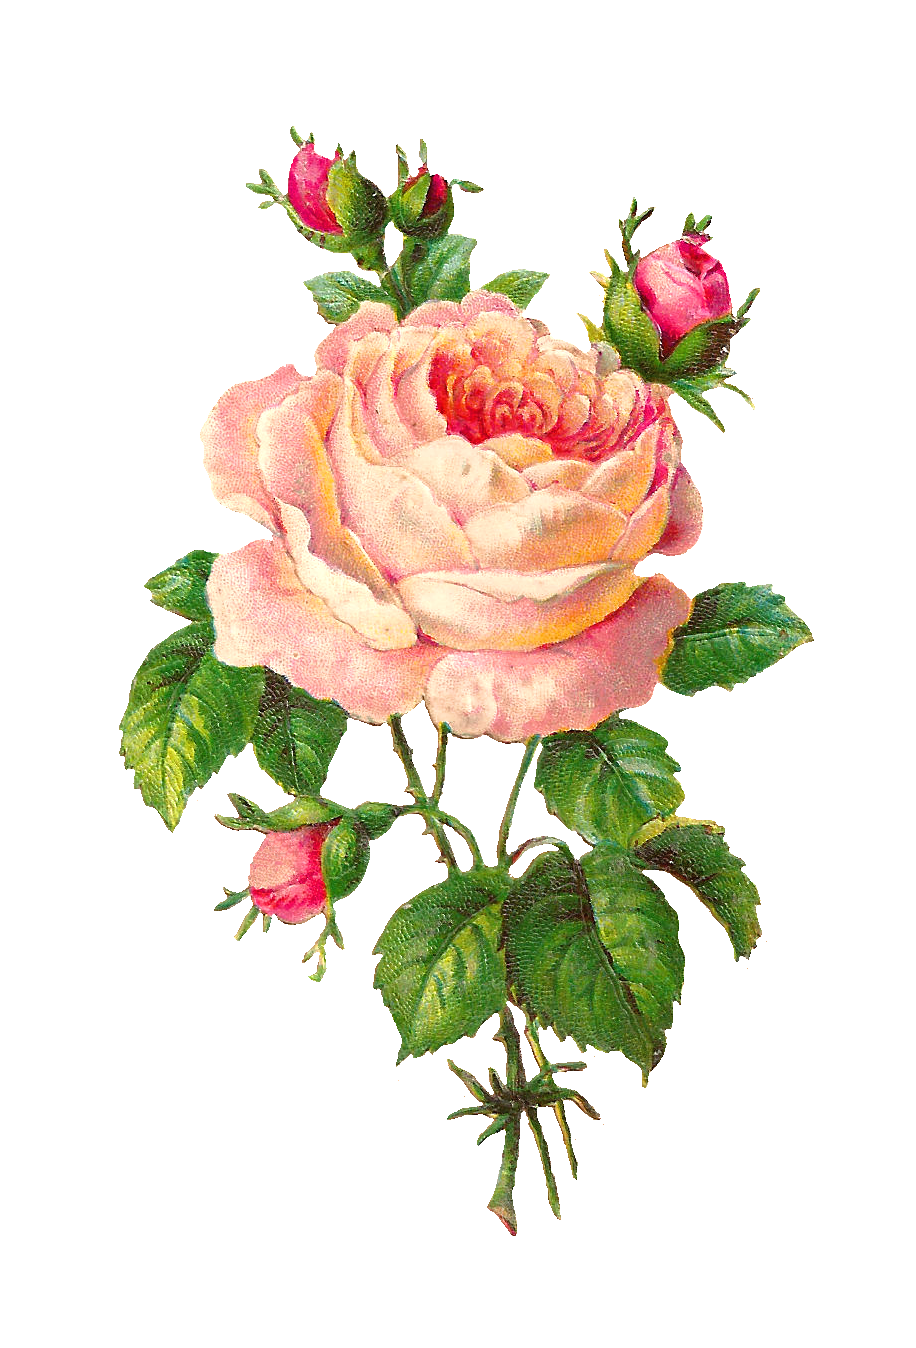 Antique Images Flower Scrapbooking Pink Rose with Buds